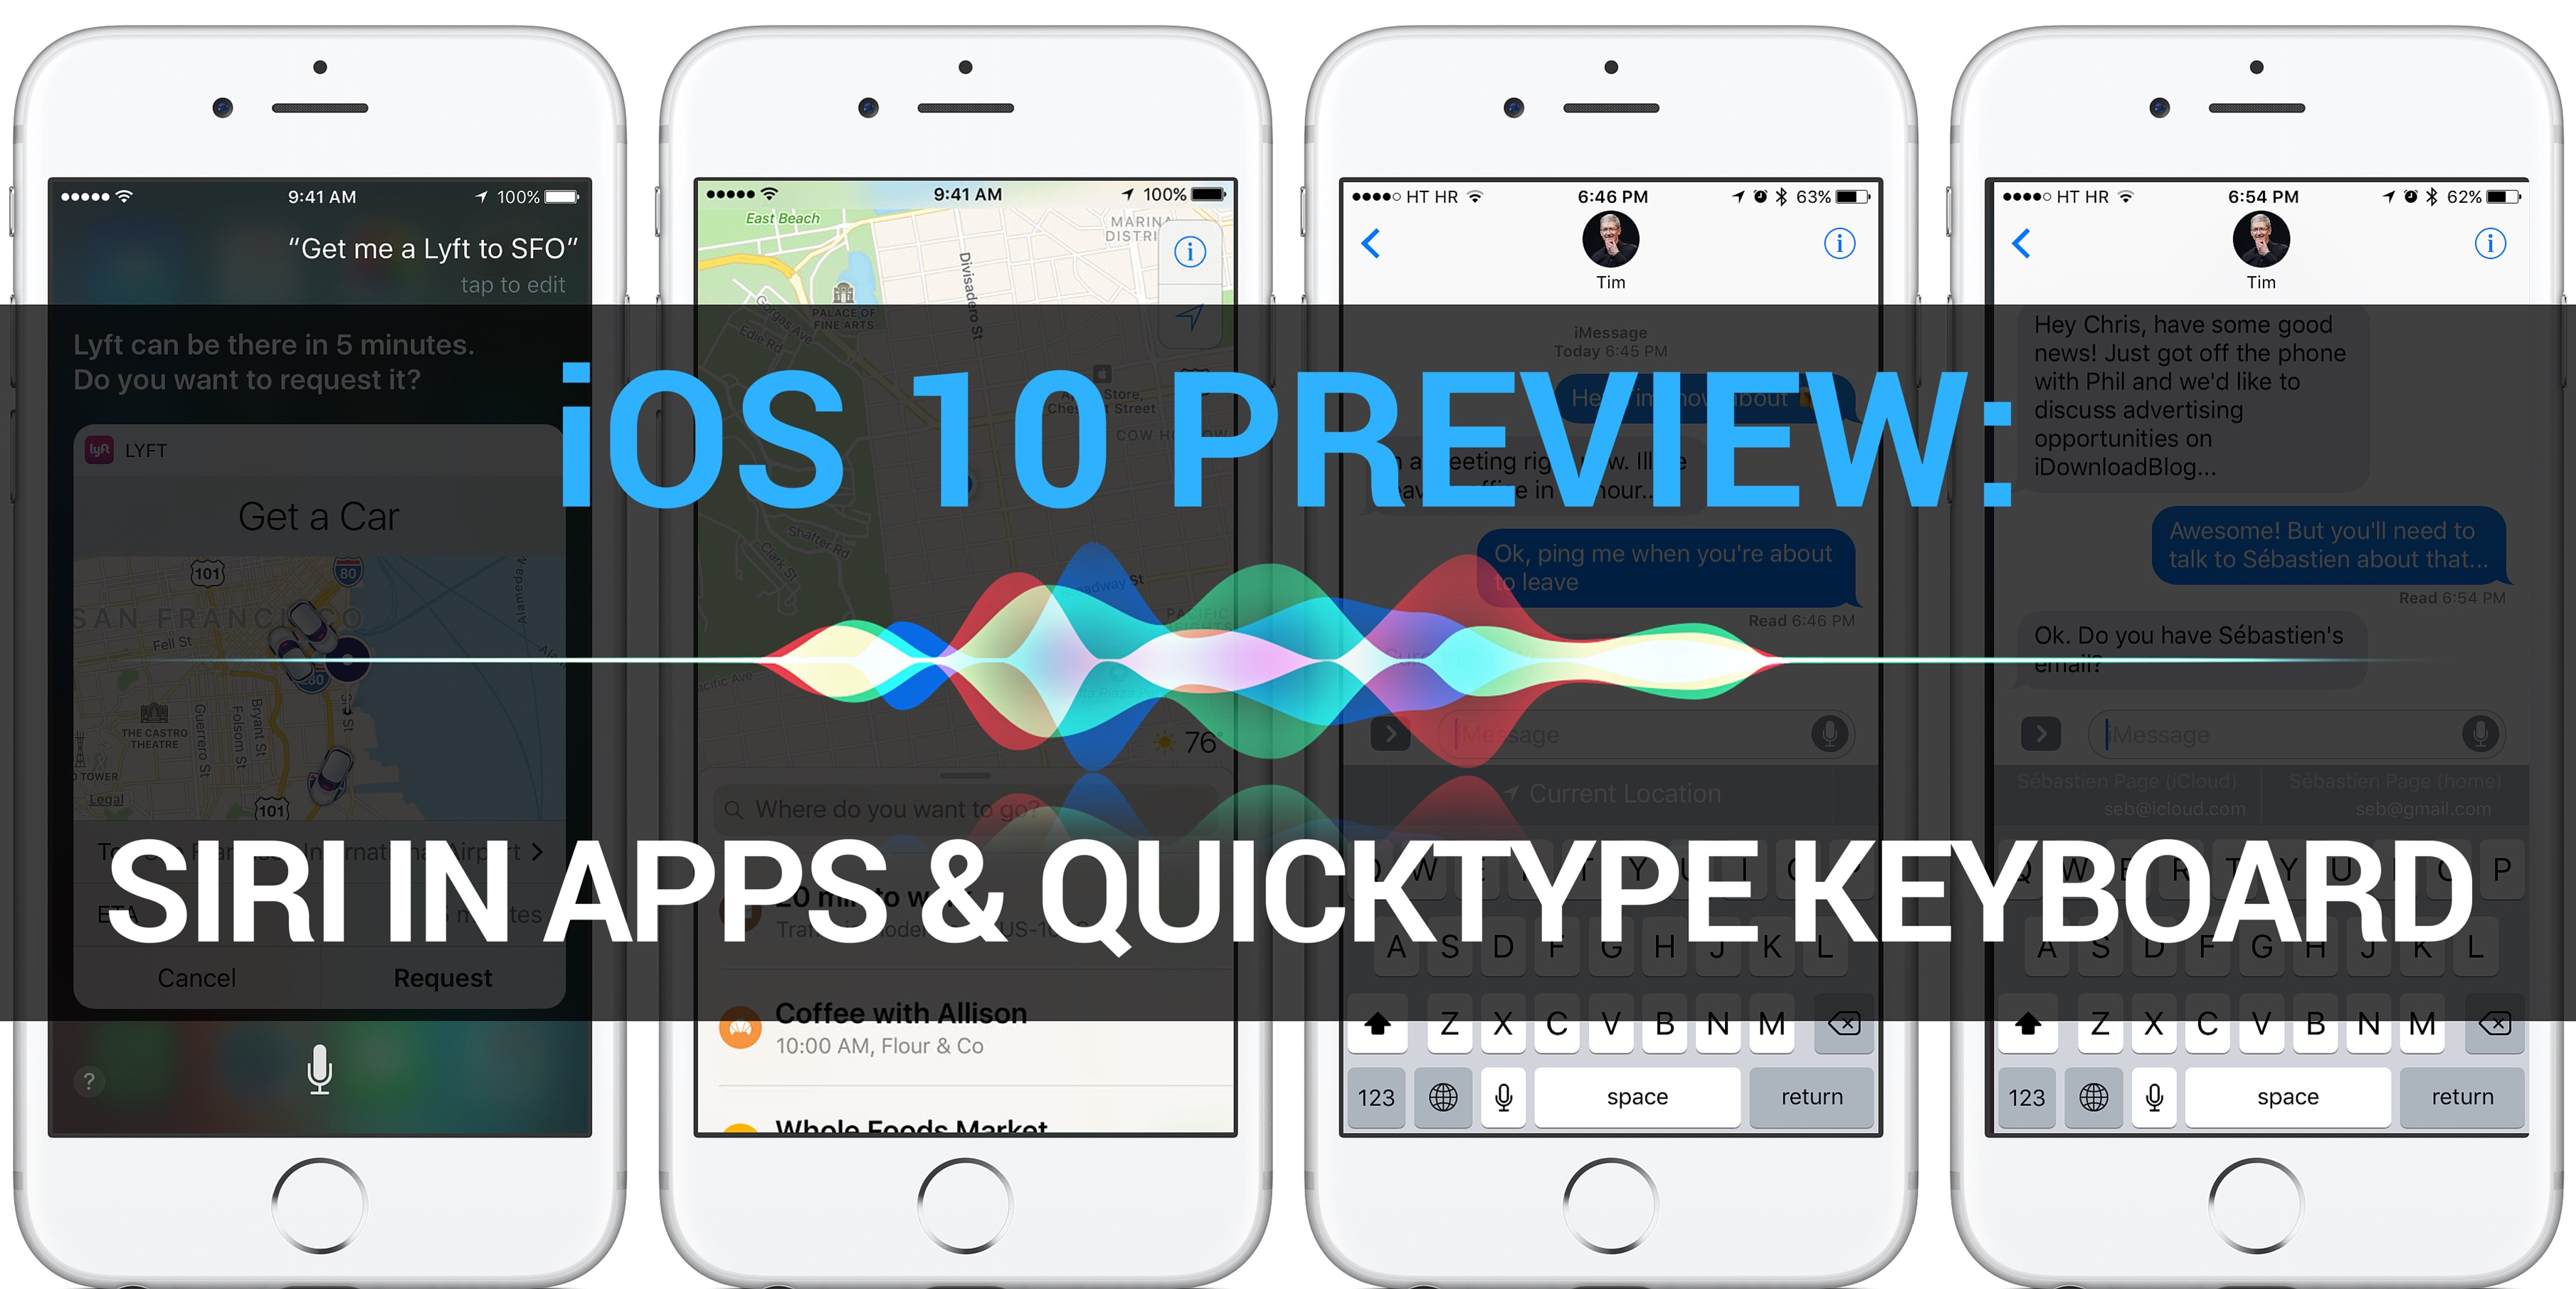 iOS 10 Preview Siri apps QuickType keyboard teaser 001